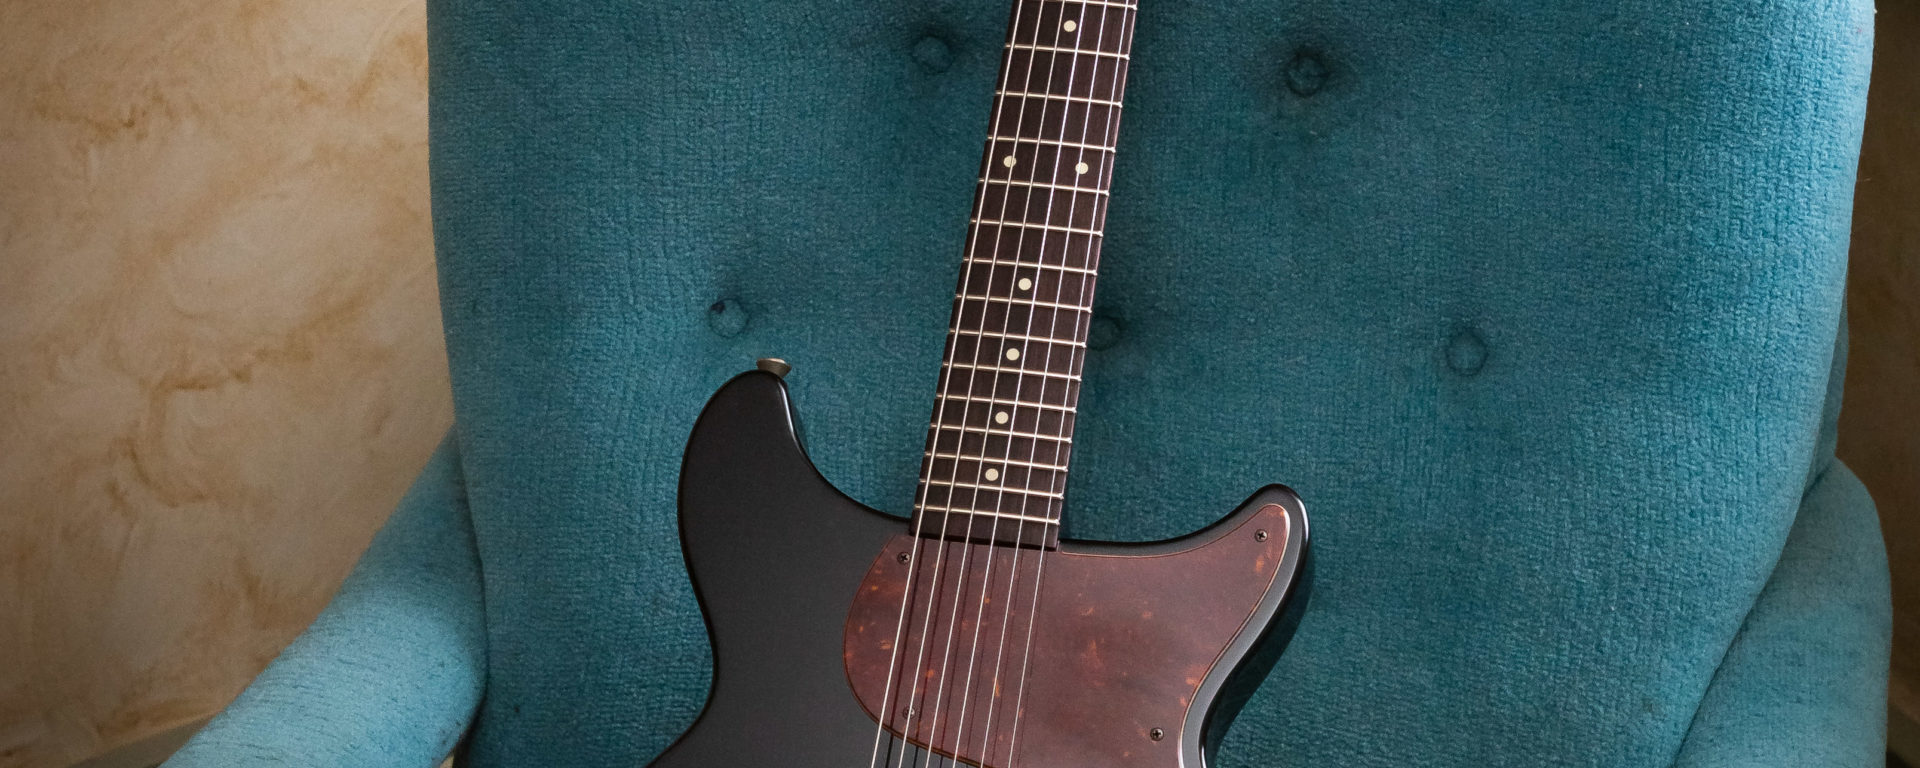 Collings Electric Guitars - 290 DC S - Jet Black - Aged